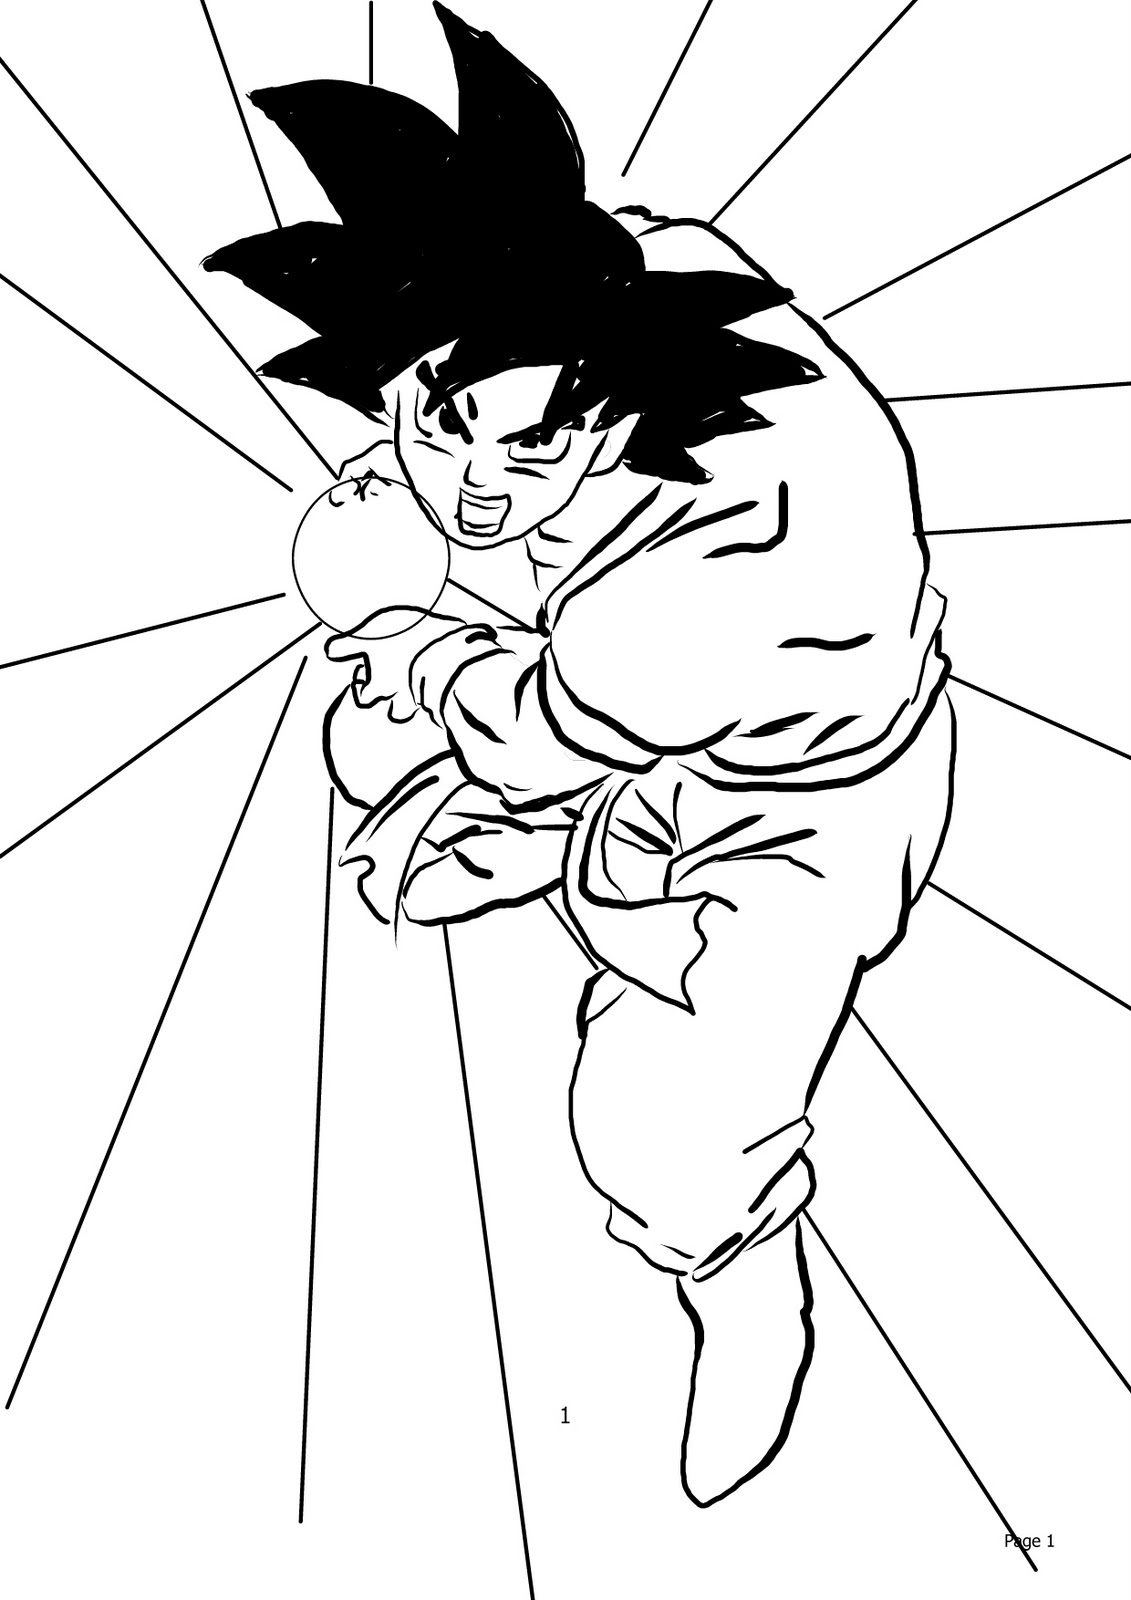 Dragon Ball Z Characters Drawing at GetDrawings.com | Free for ...